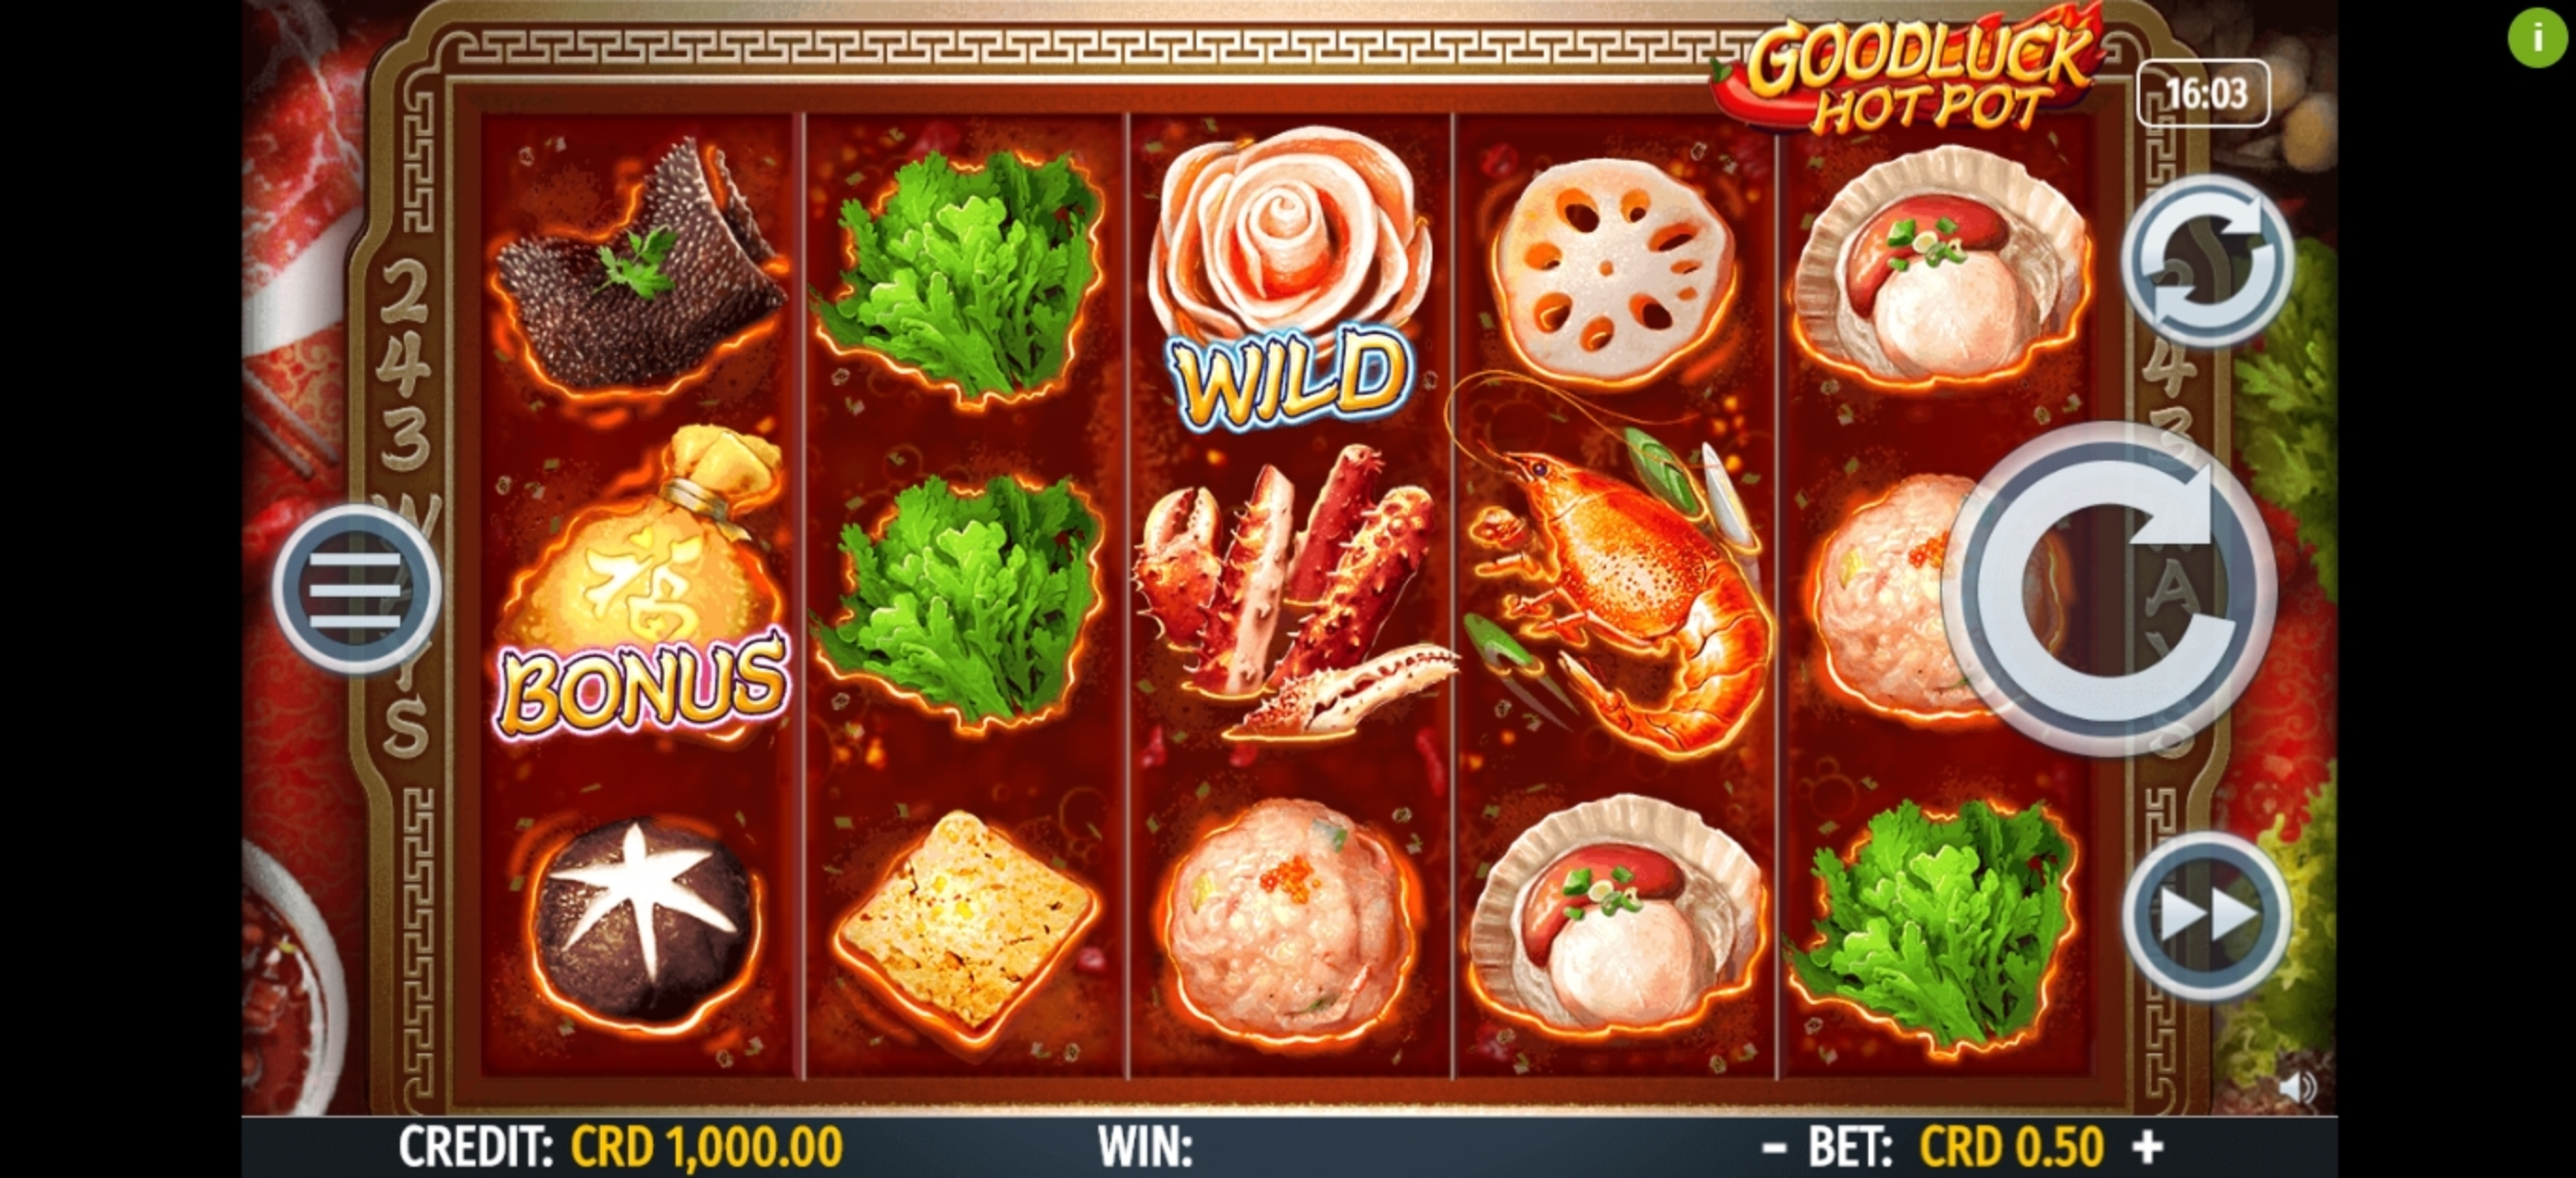 Reels in Goodluck Hot Pot Slot Game by Octavian Gaming